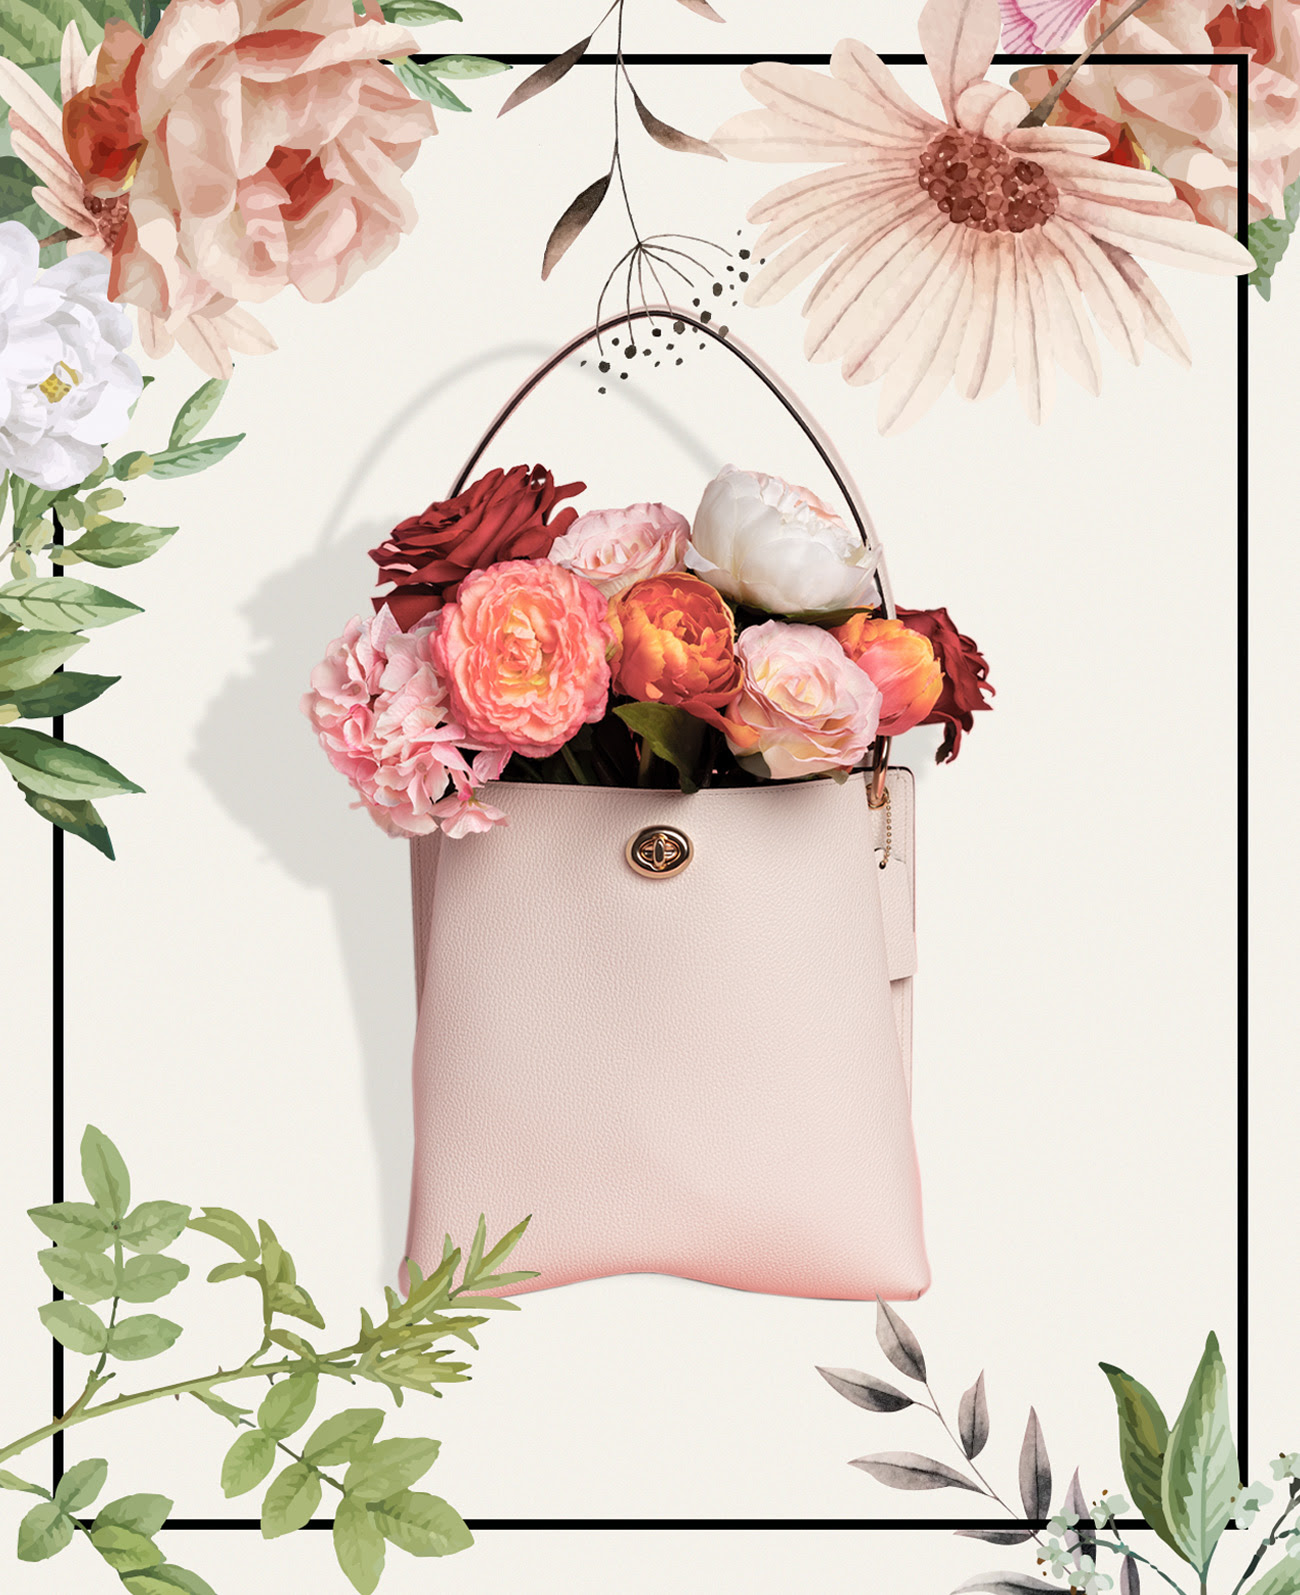 Brown Thomas - A gift for her and a gift for you